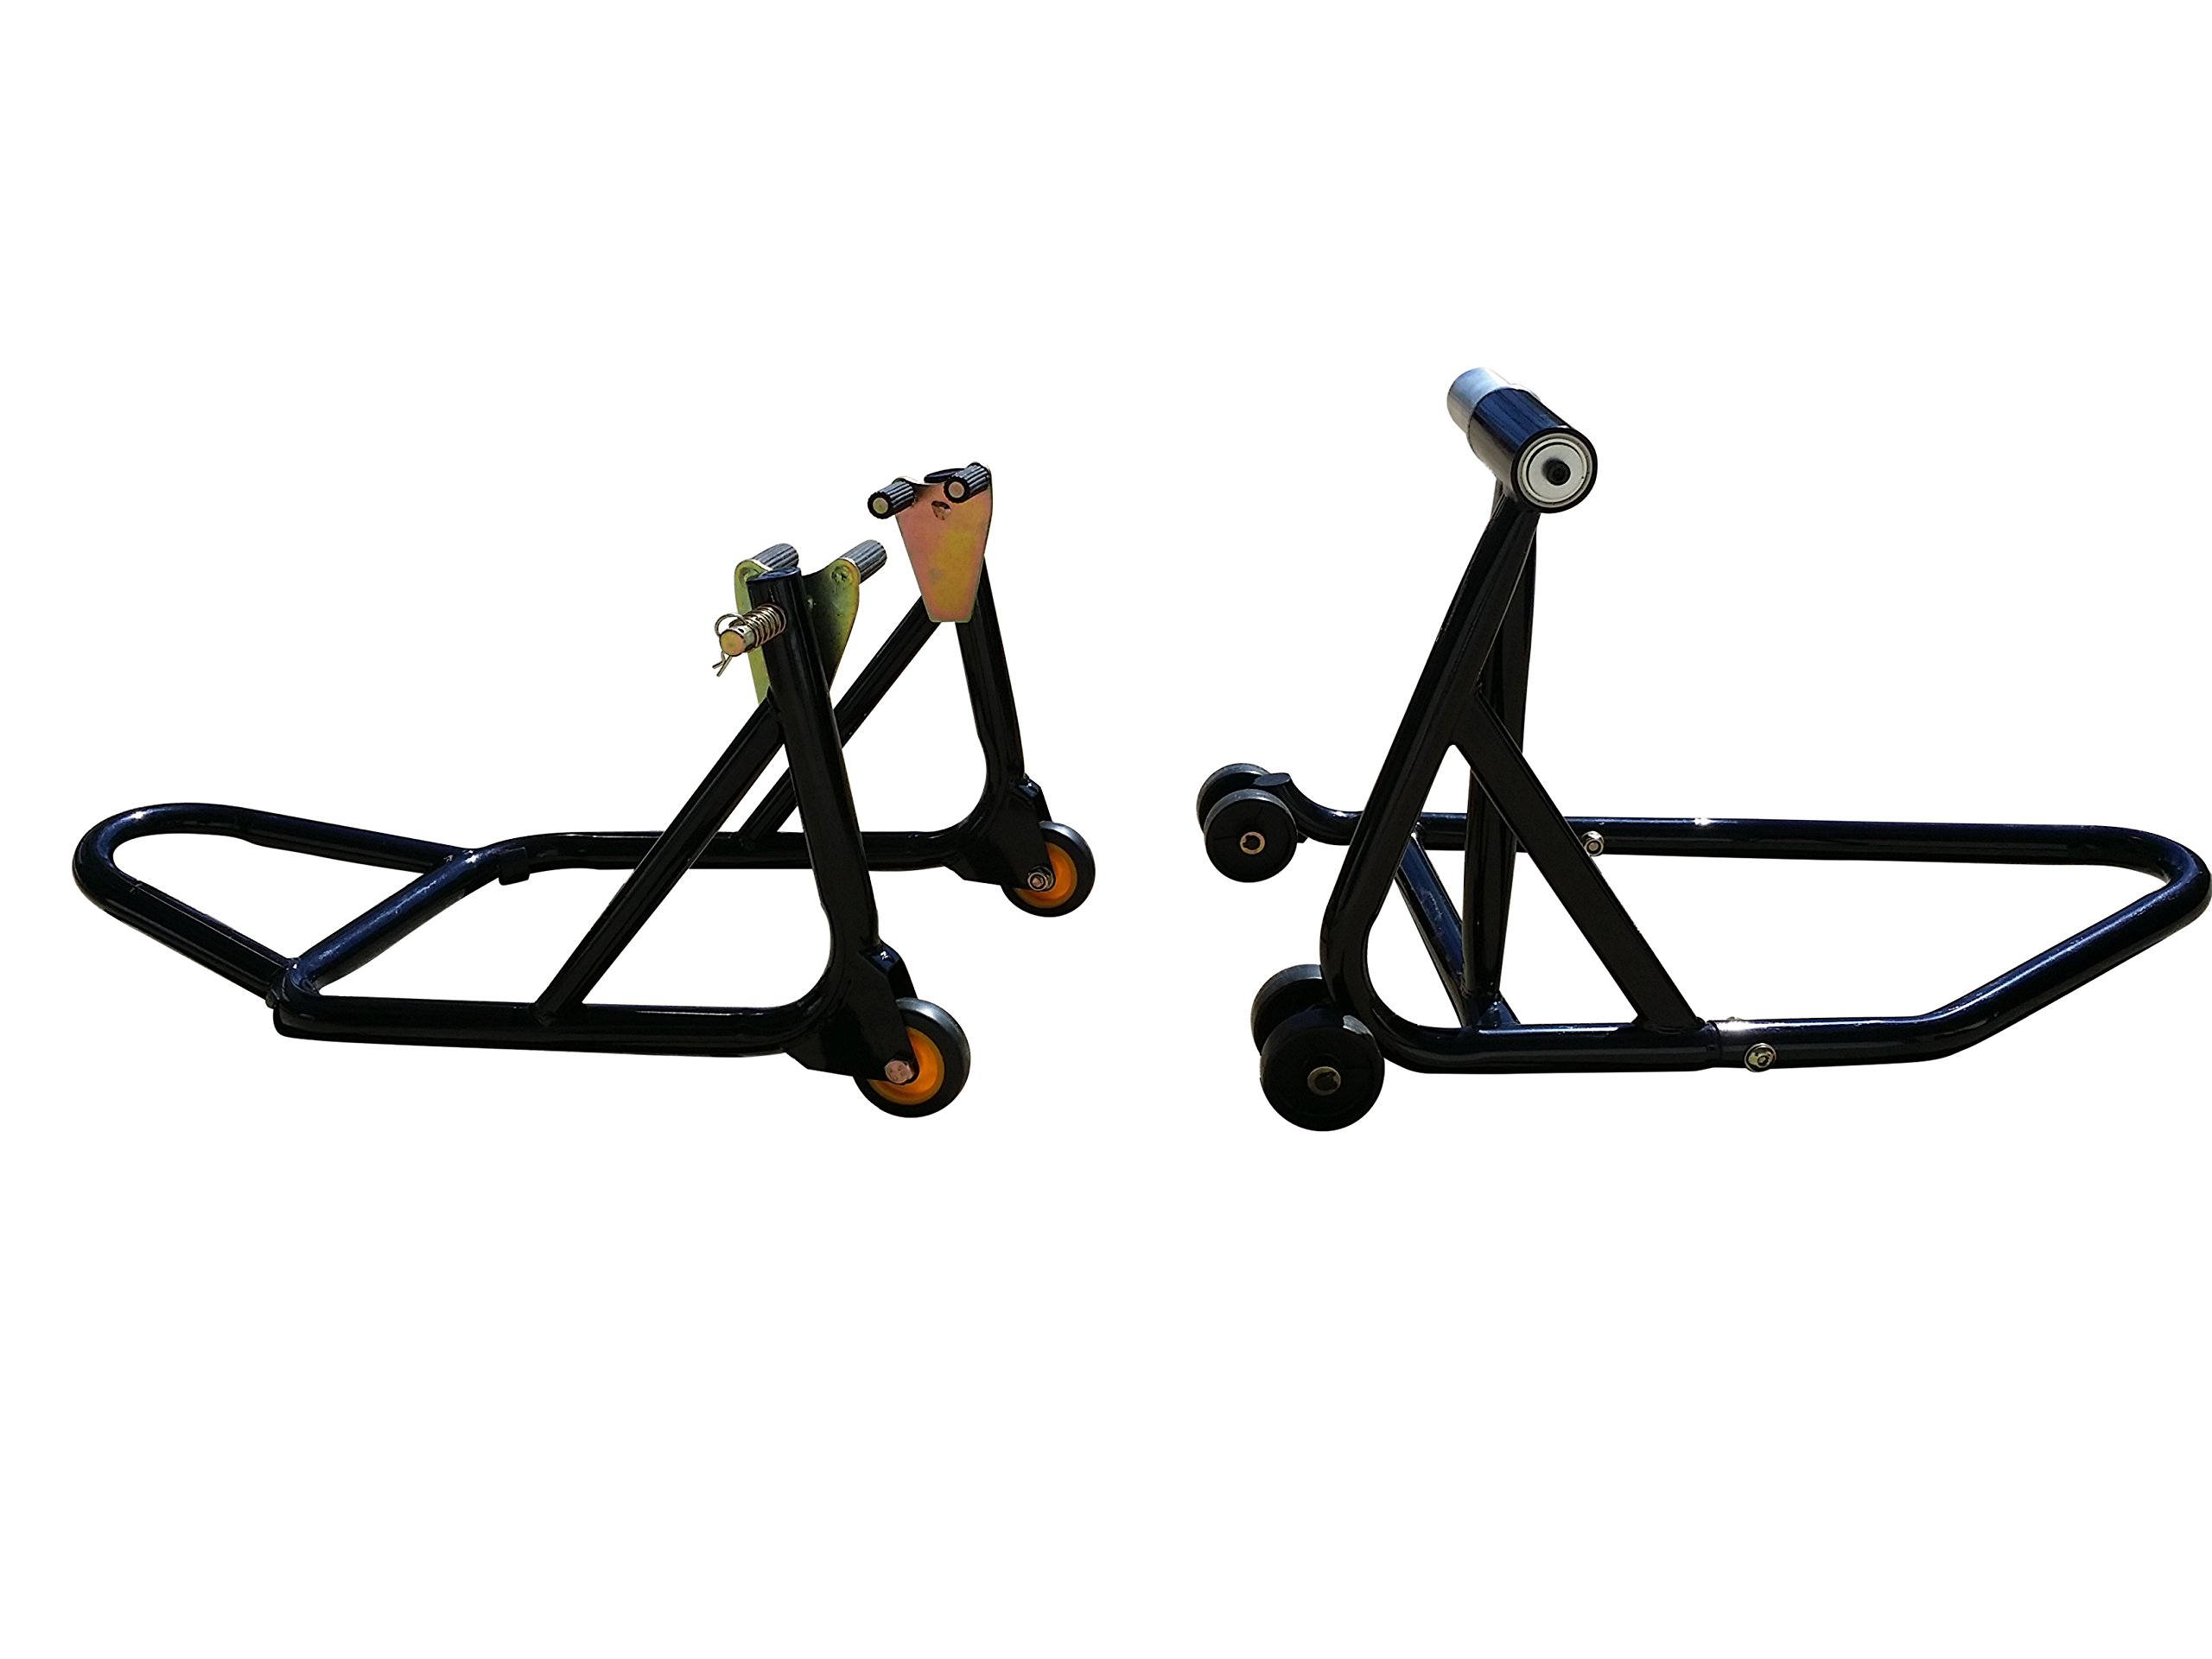 Front Forklift and Rear Stand for Ducati 748, 848, 848 Streetfighter, 916, 996, 998, HyperMotard, 5 bolt rear axle models